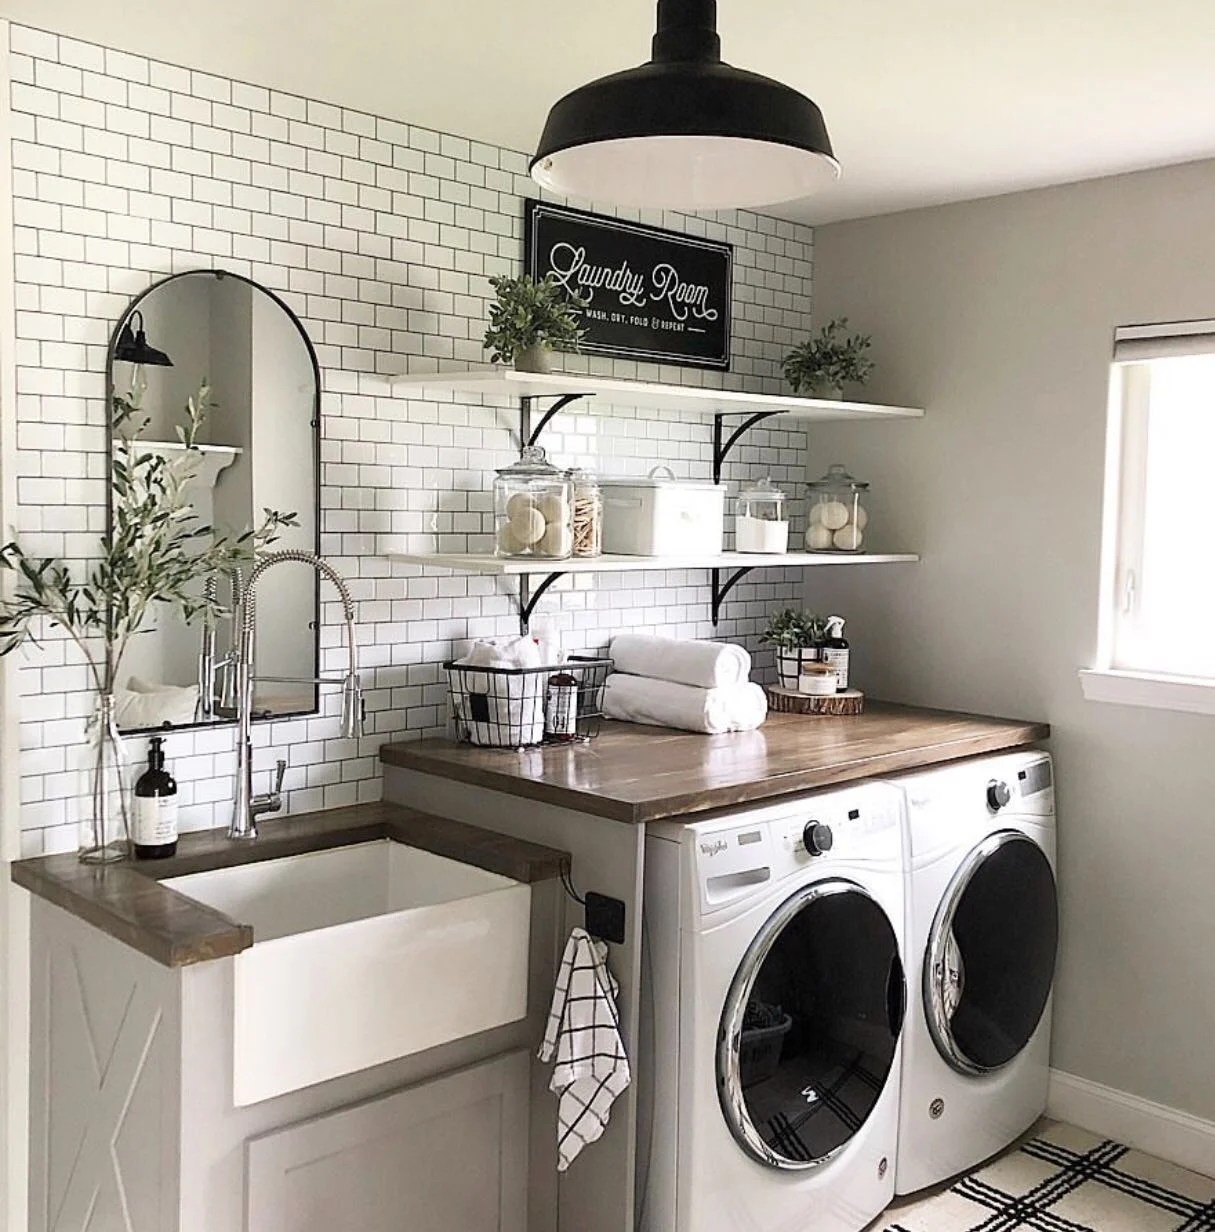 A Dream Laundry Room Makeover - Decor Steals Blog on Laundry Room Decor  id=76936